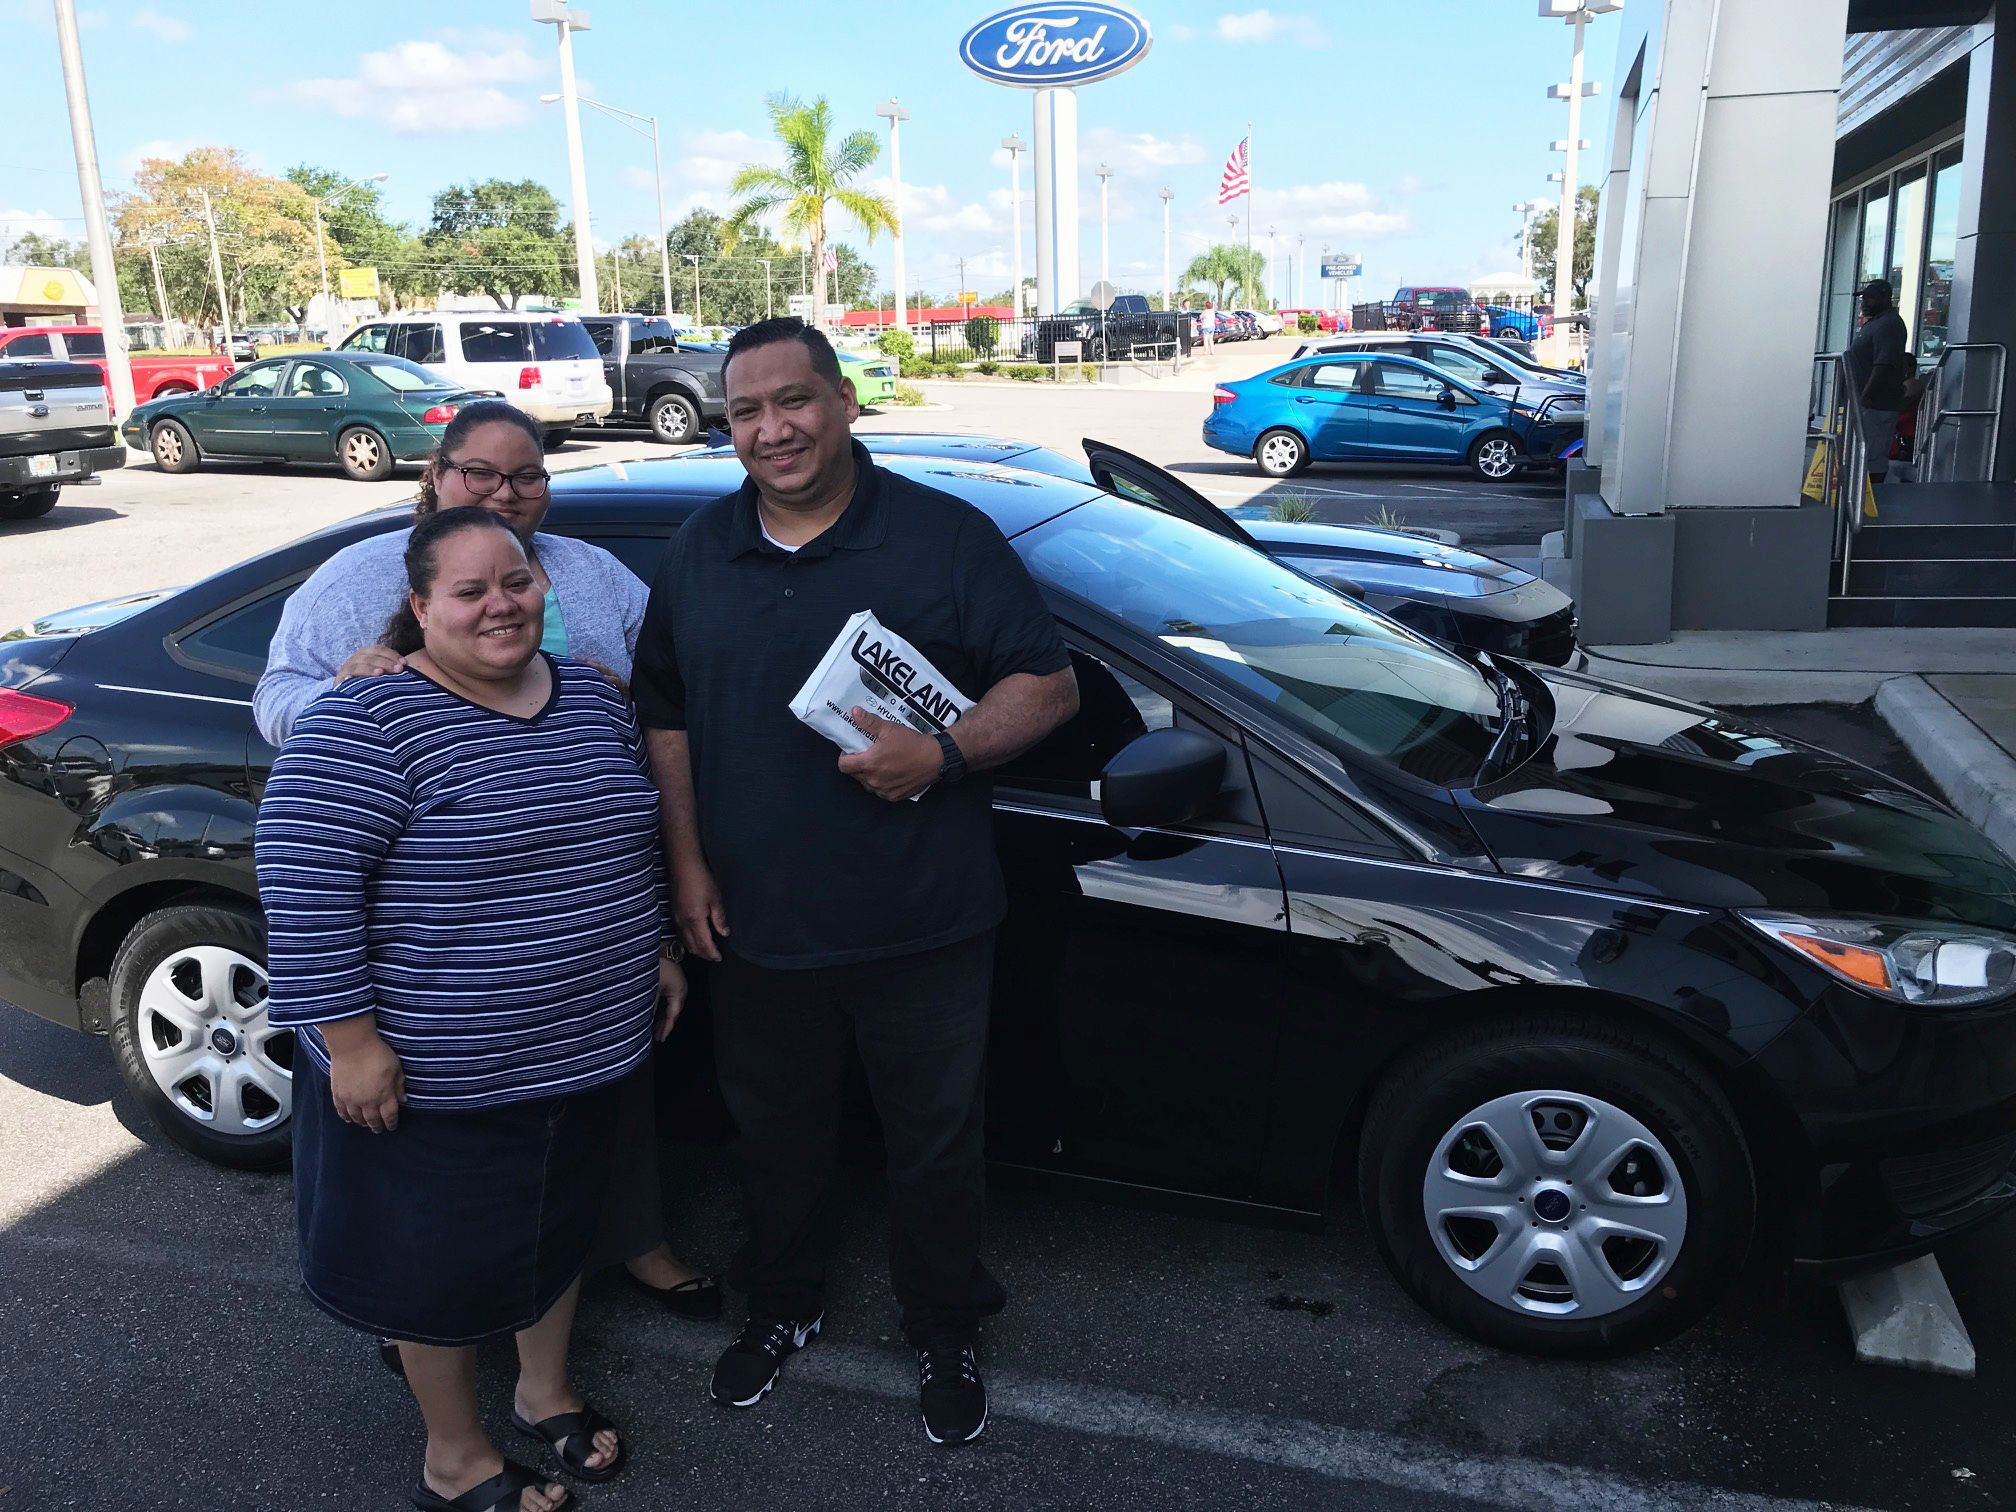 It Is So Exciting When We Hear That A Customer Had A Great Time Buying A Car With One Of Our Salesman Damon Nielsen Mr William Gomez Lakeland Ford Ford Focus